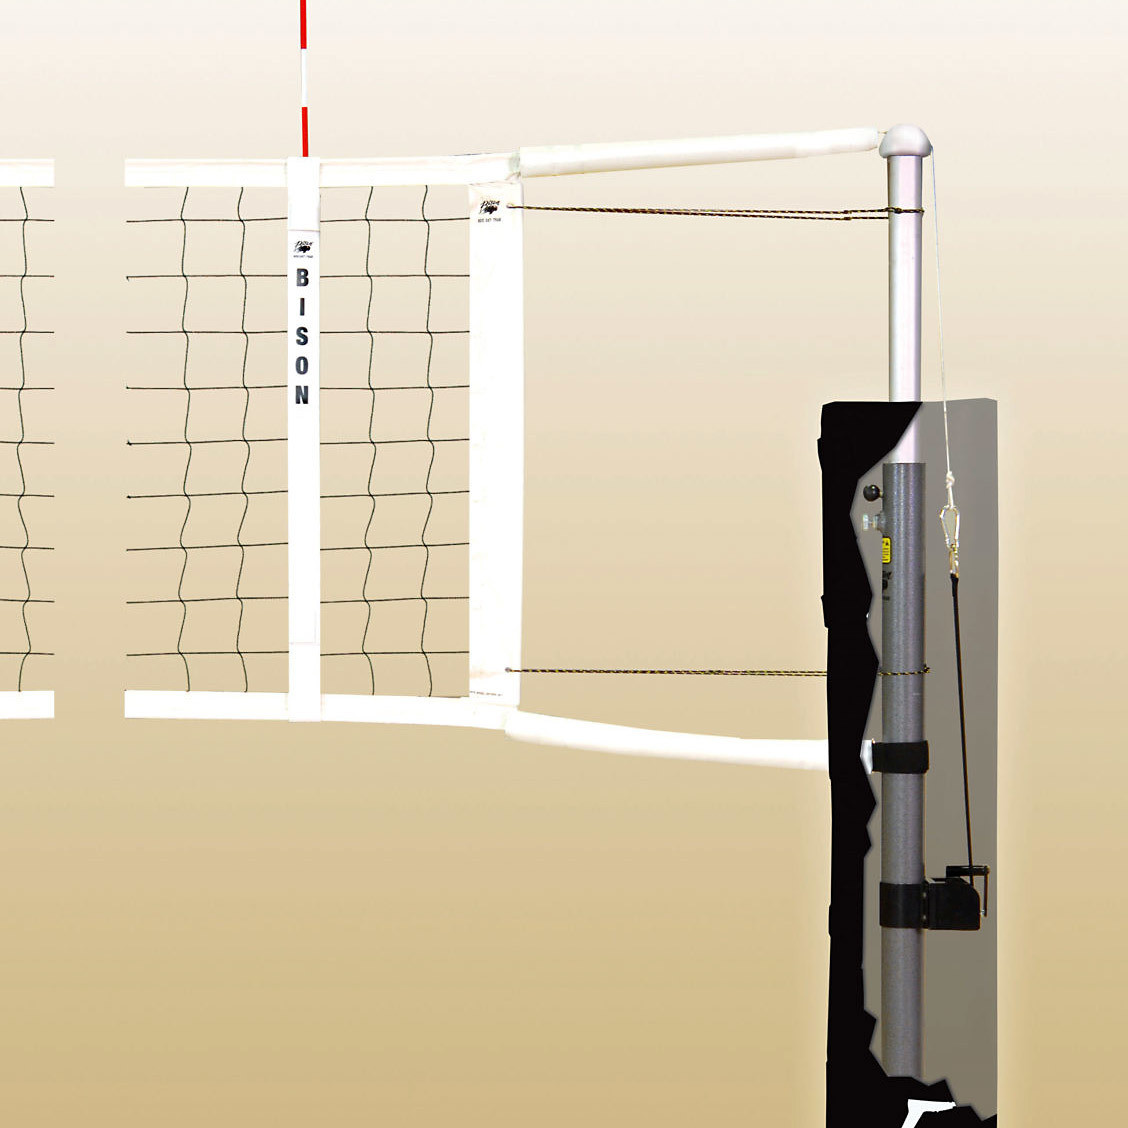 Bison Centerline Elite Aluminum Volleyball System